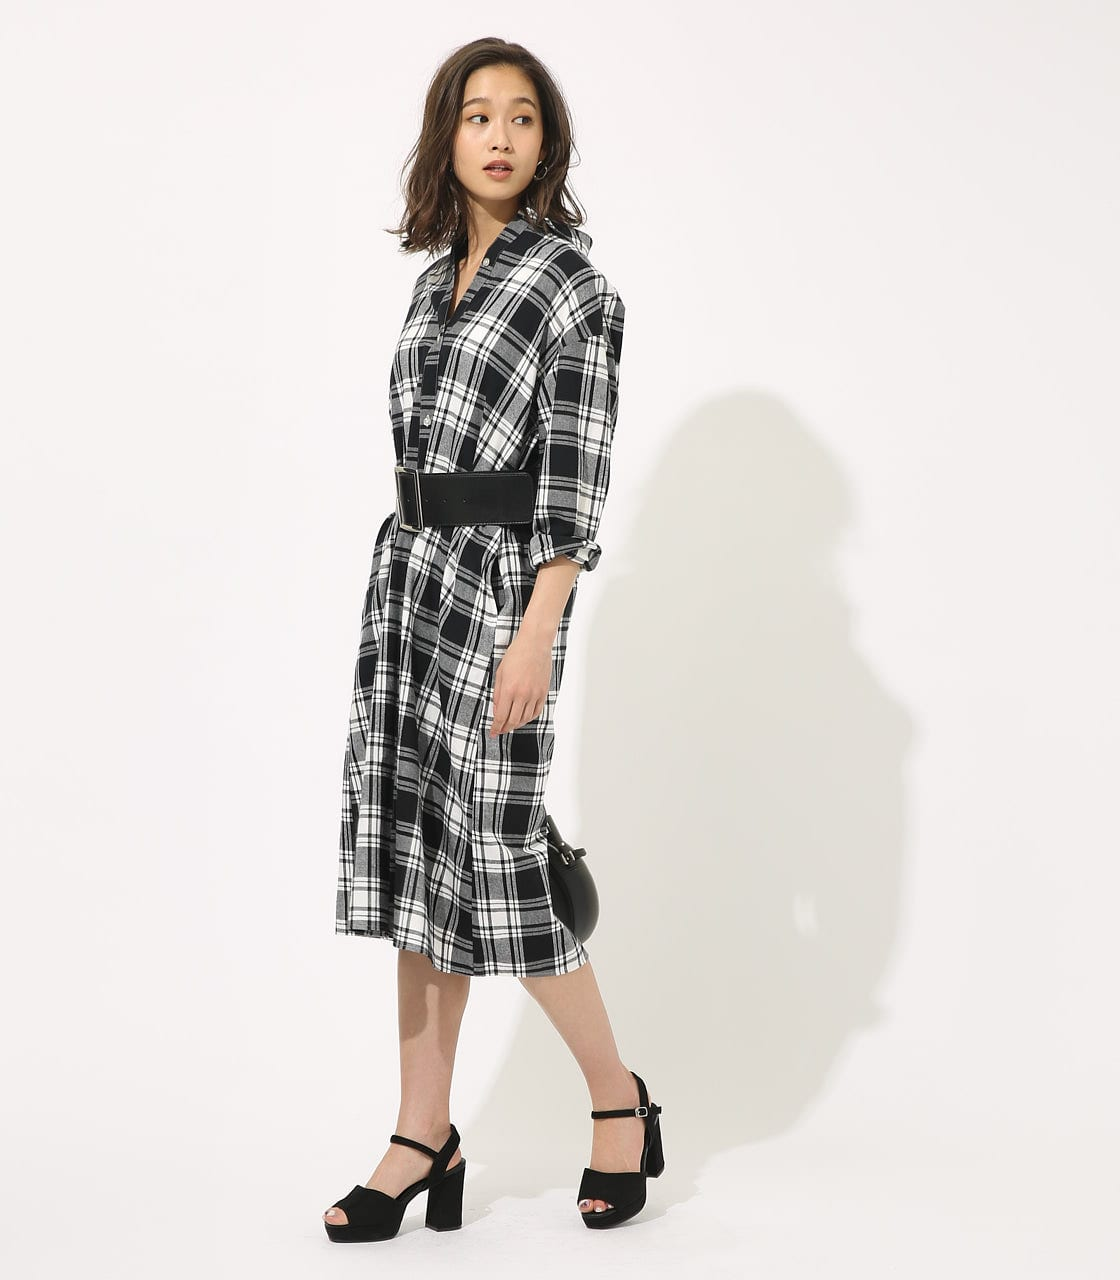 【AZUL BY MOUSSY】CHECK ONEPIECE 詳細画像 柄BLK 1